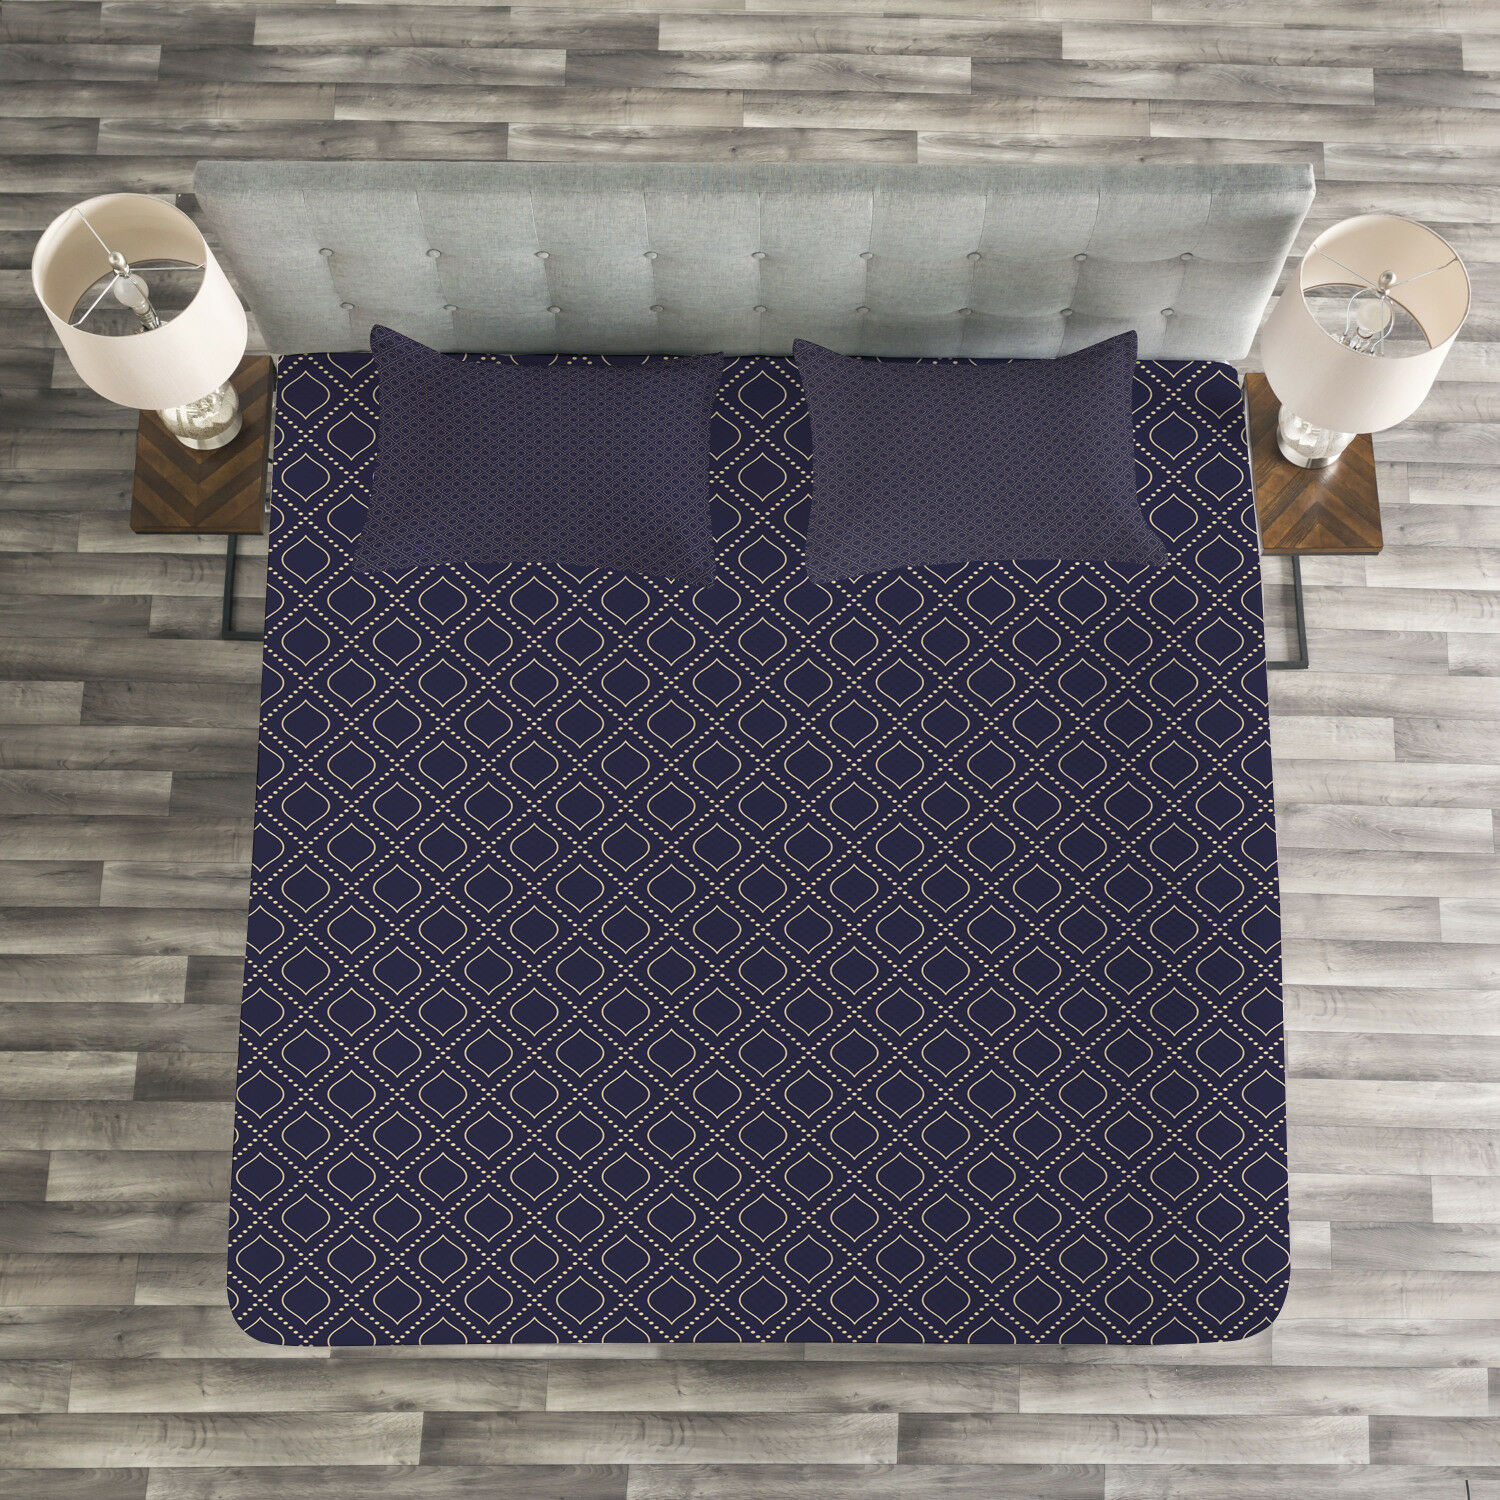 Navy bluee Quilted Bedspread & Pillow Shams Set, Geometric Ogee Tile Print